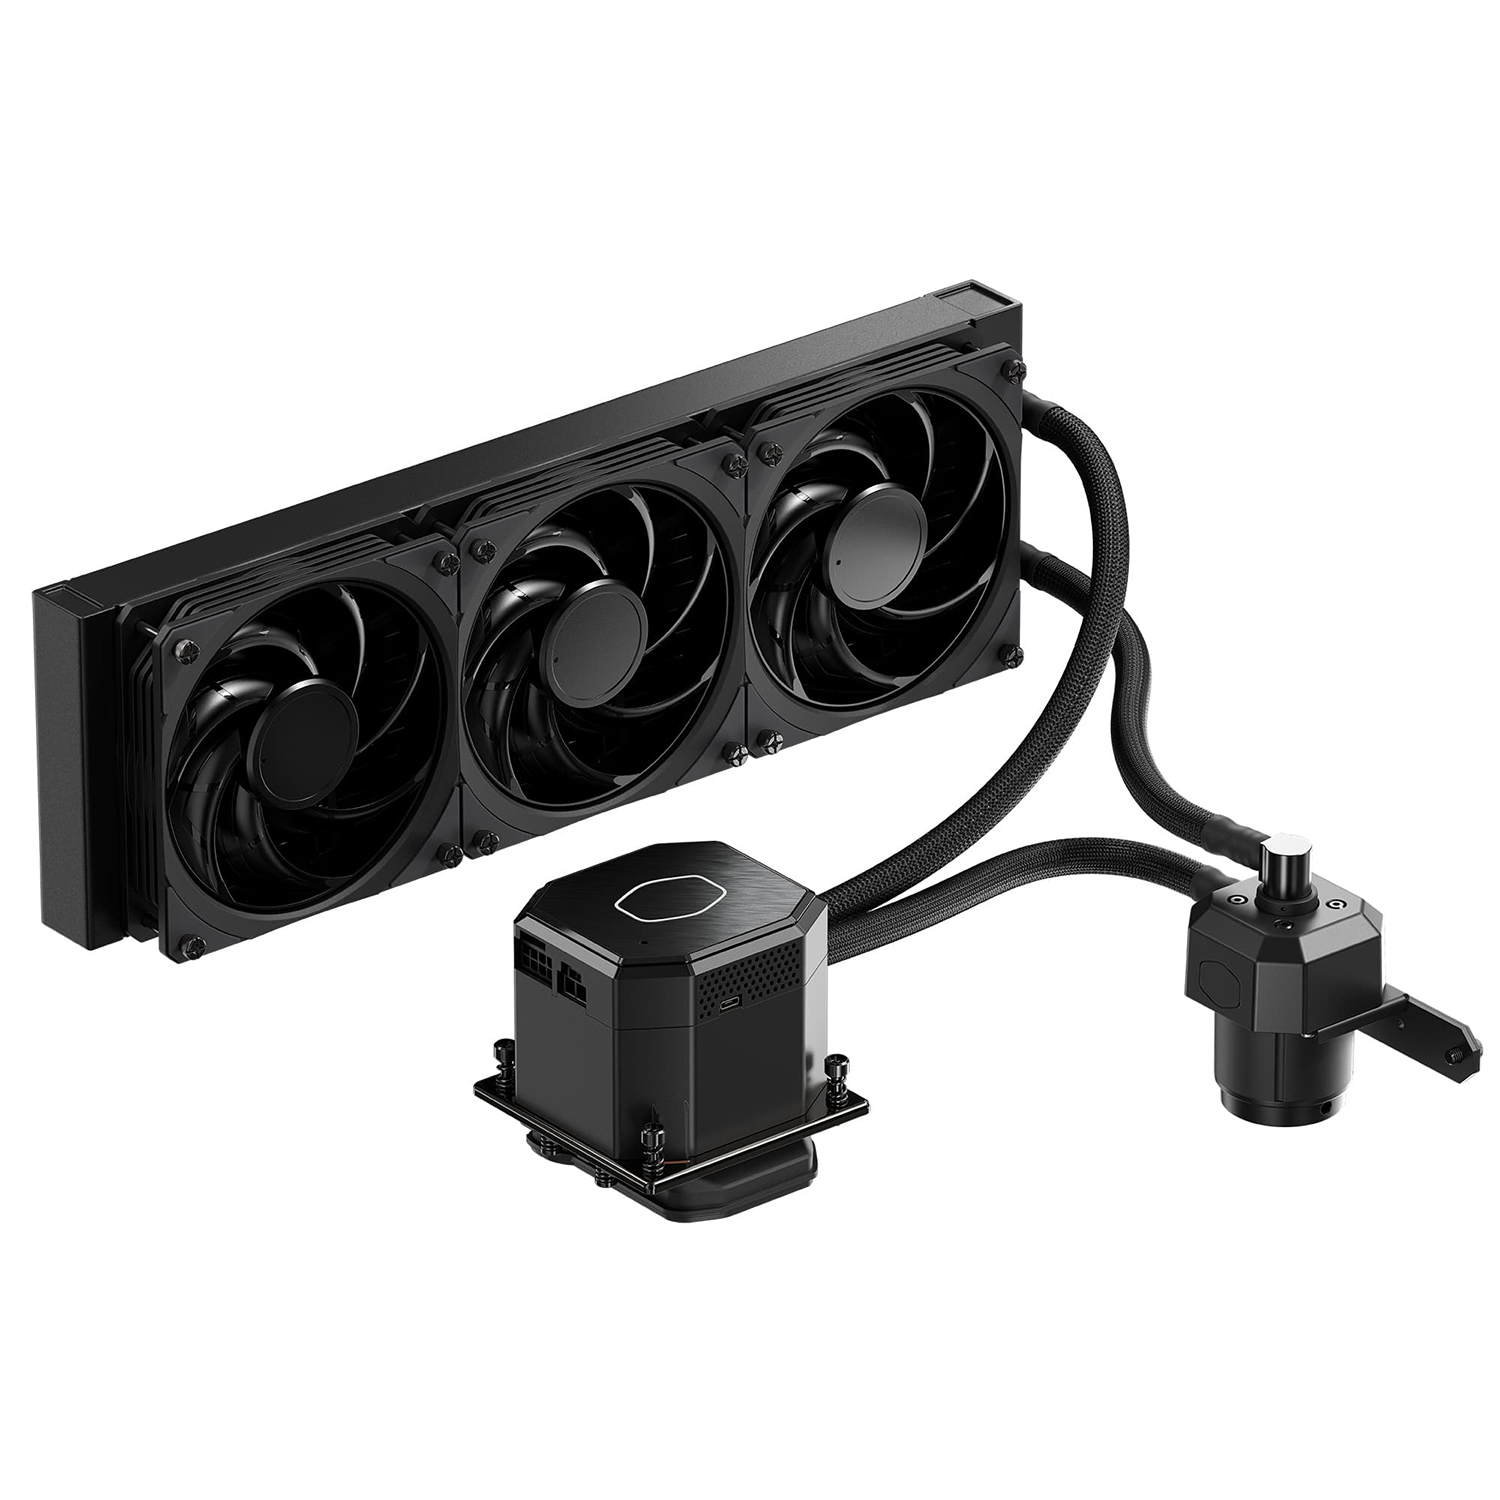 Cooler Master and Intel produce impressive processor coolers